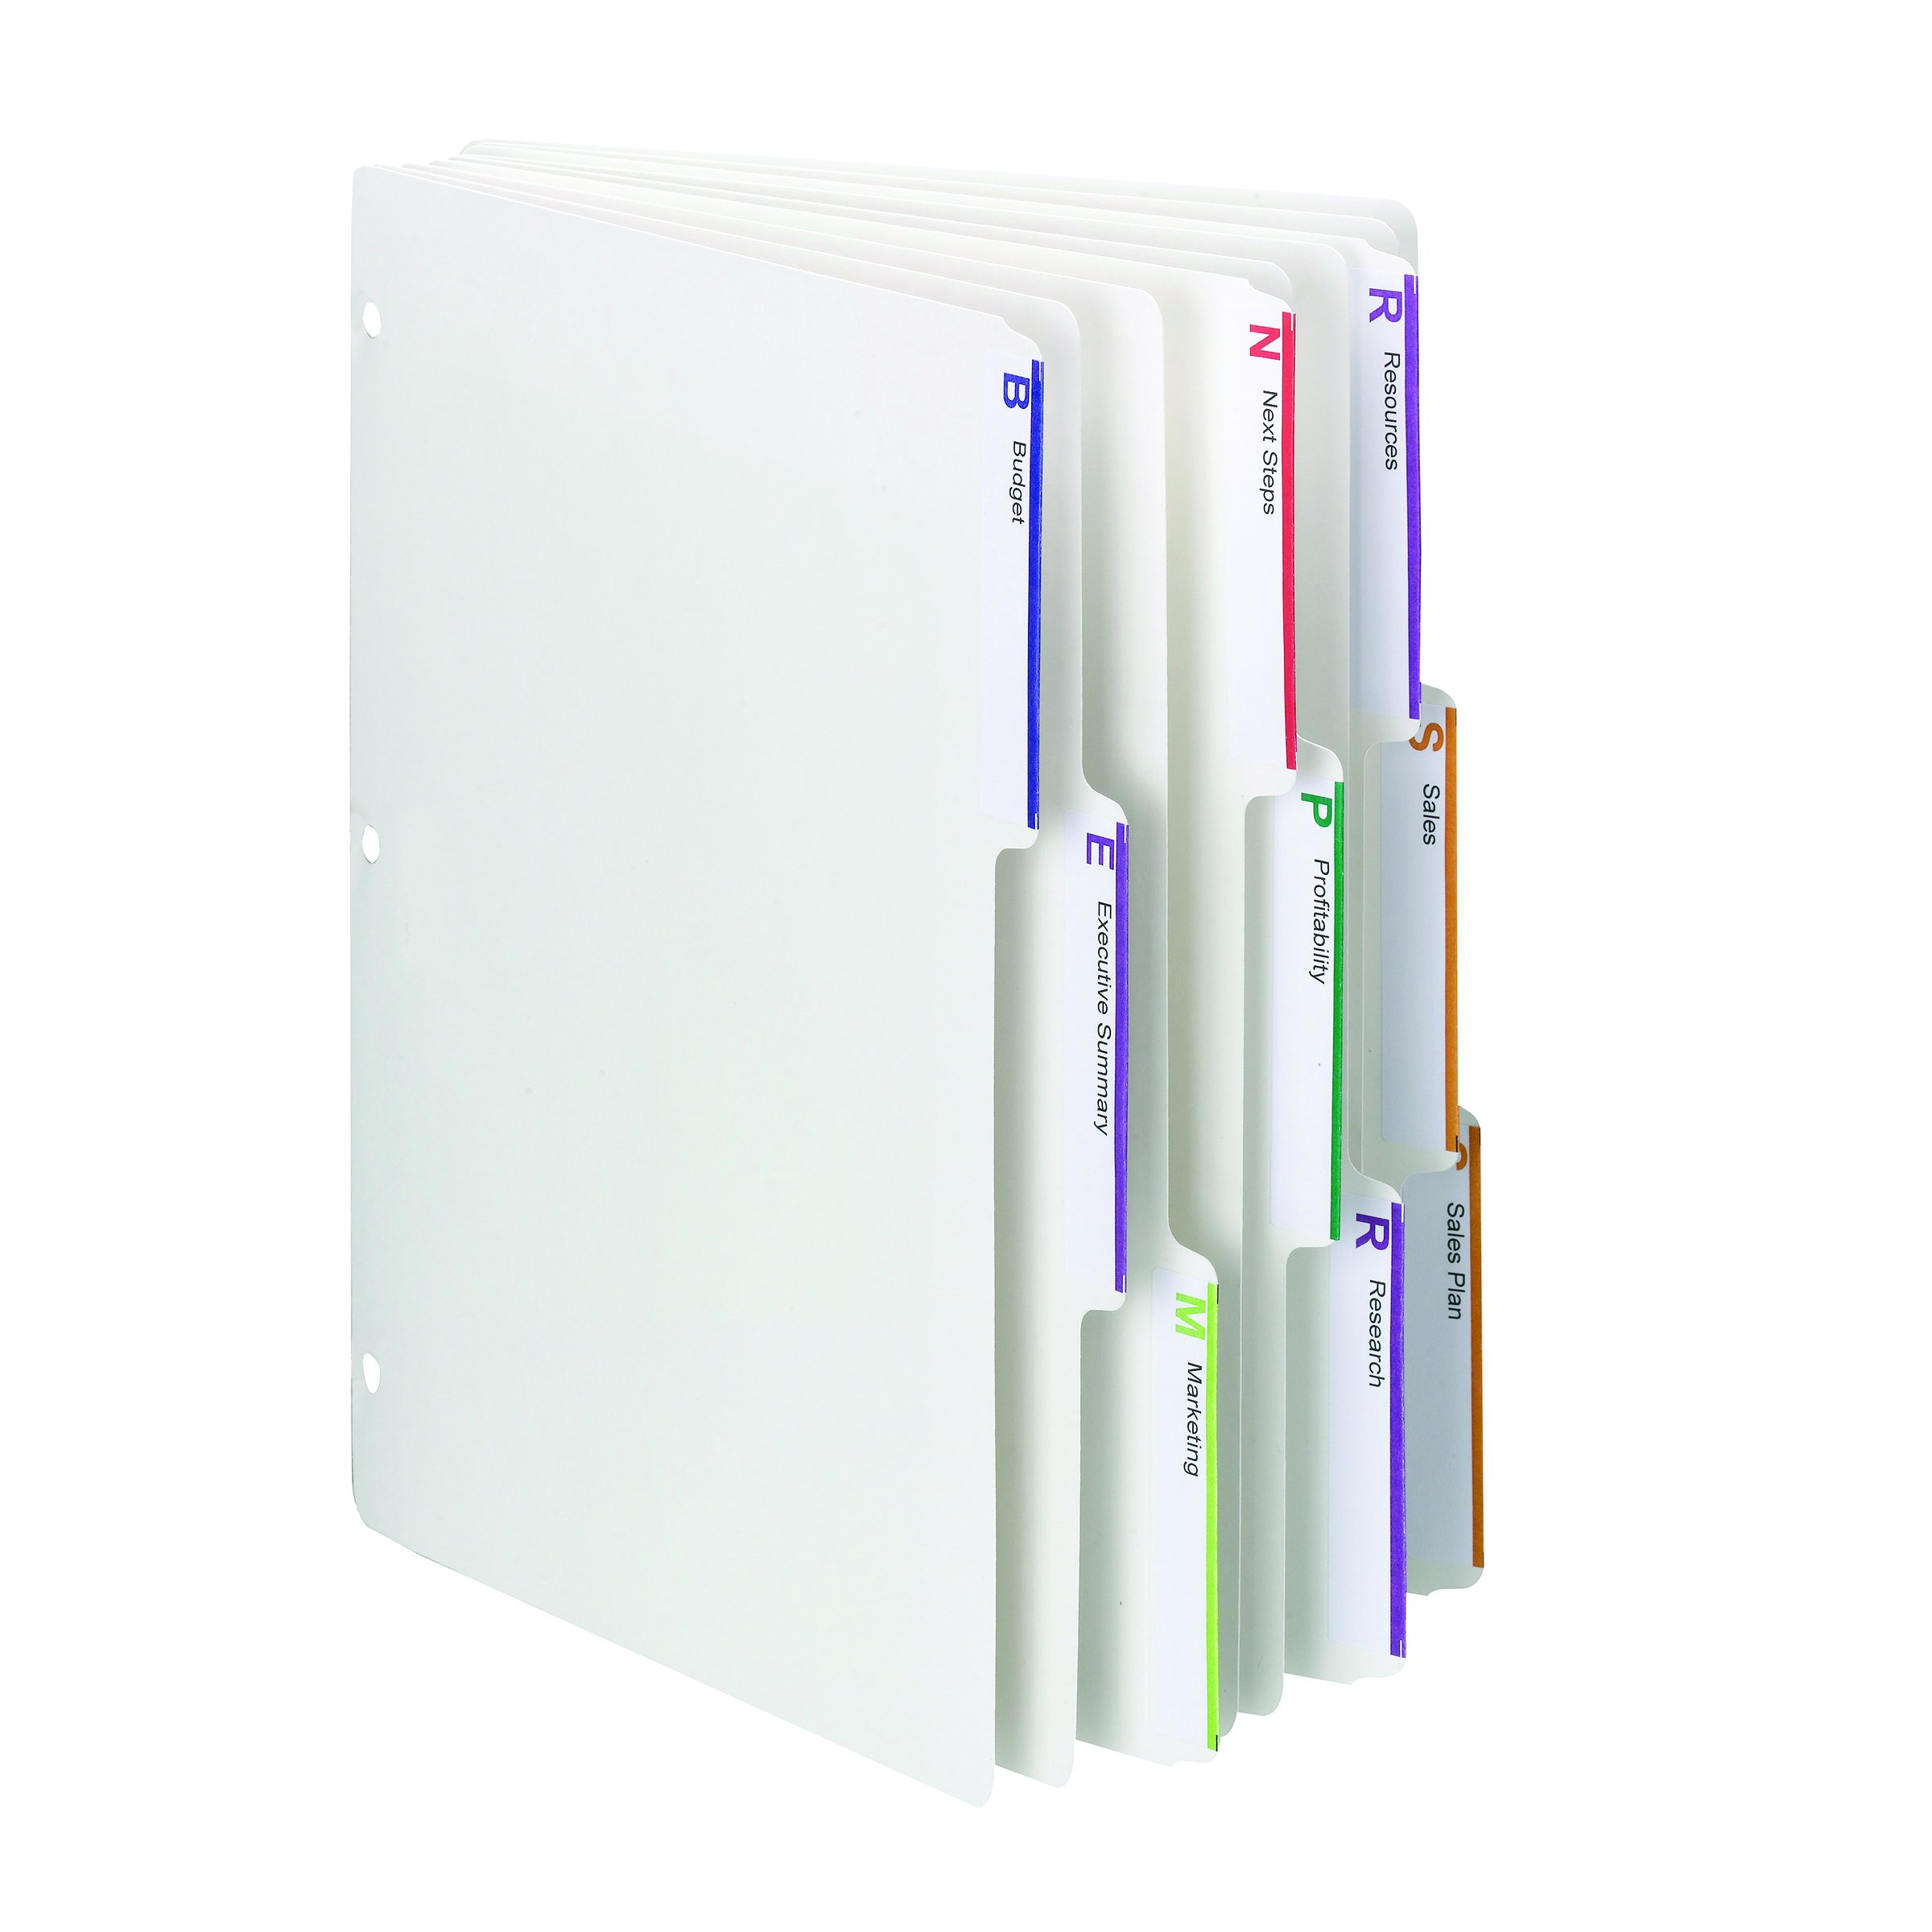 Smead Viewables Three-Ring Binder Index Dividers, 1/3-Cut Tab, Letter Size, White, 75 per Box (89413) by Smead (Image #1)